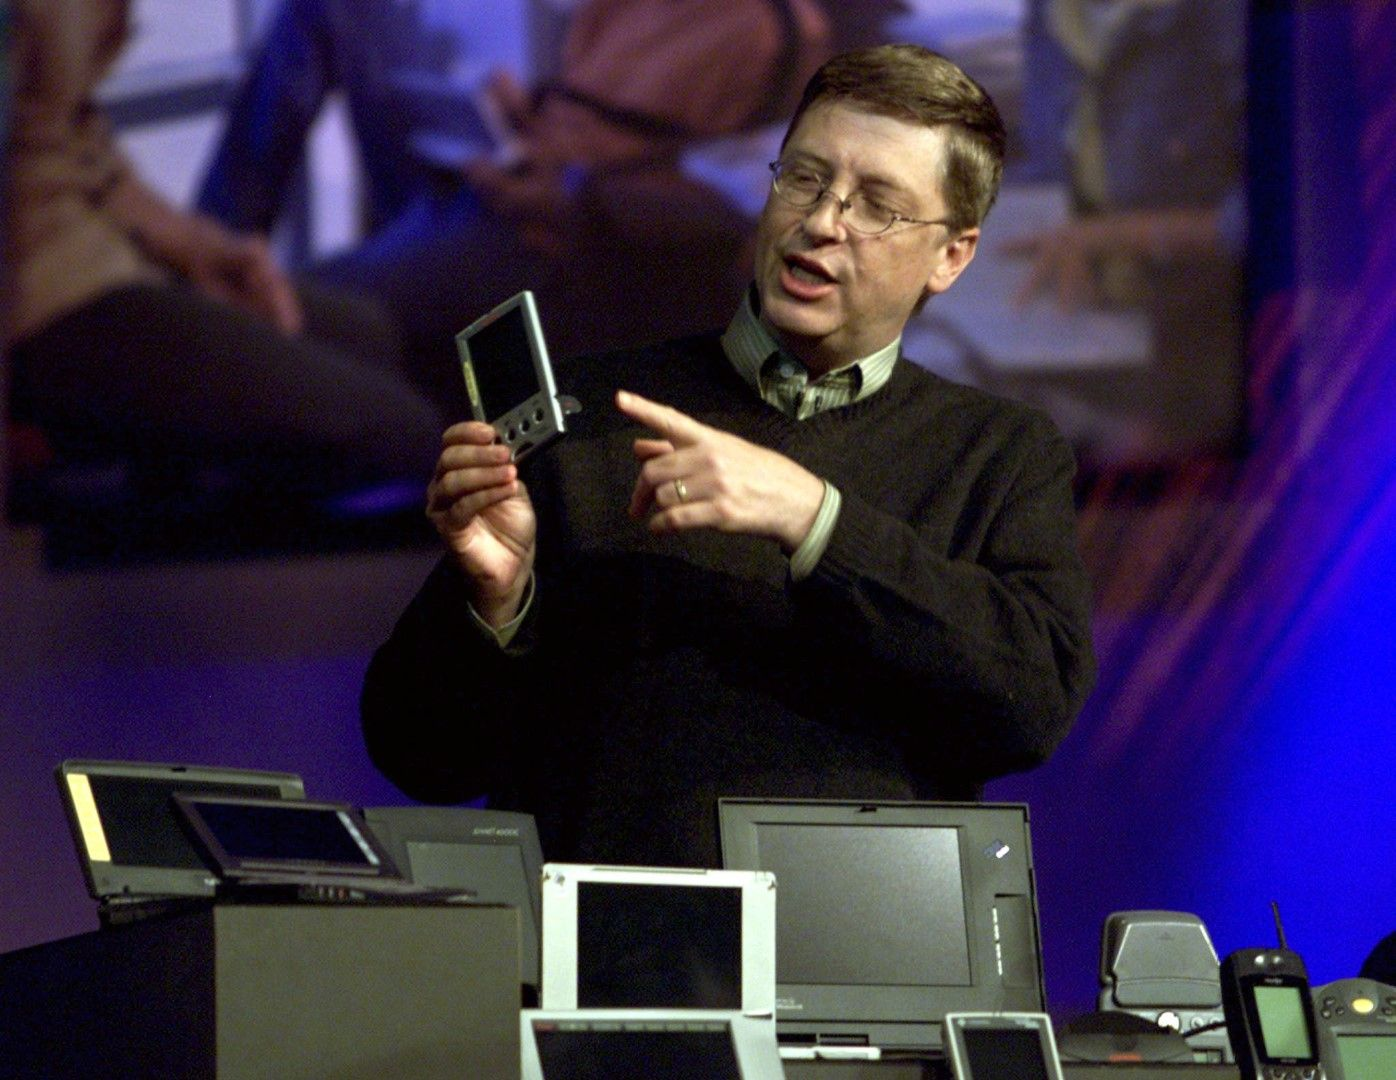 By 2000, Windows CE was powering pocket computers, subnotebooks, tablets and other types of devices.